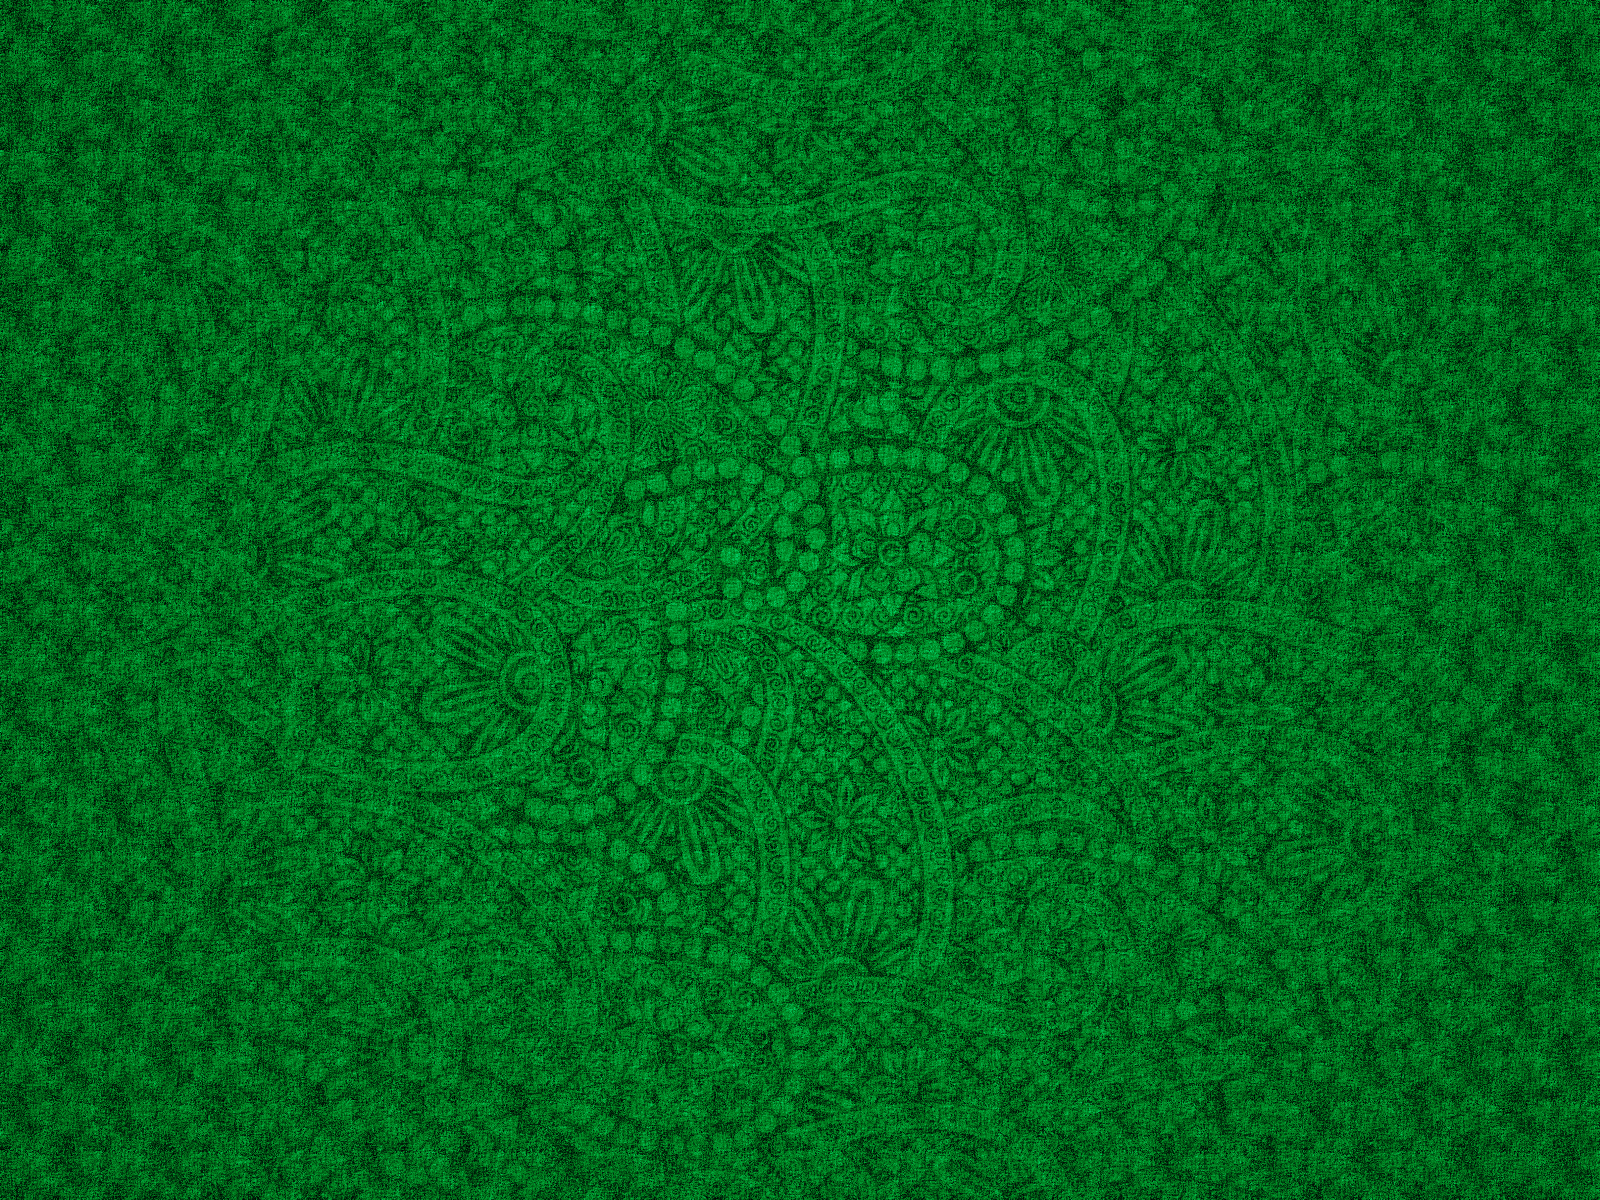 1600x1200-green-dawn.png